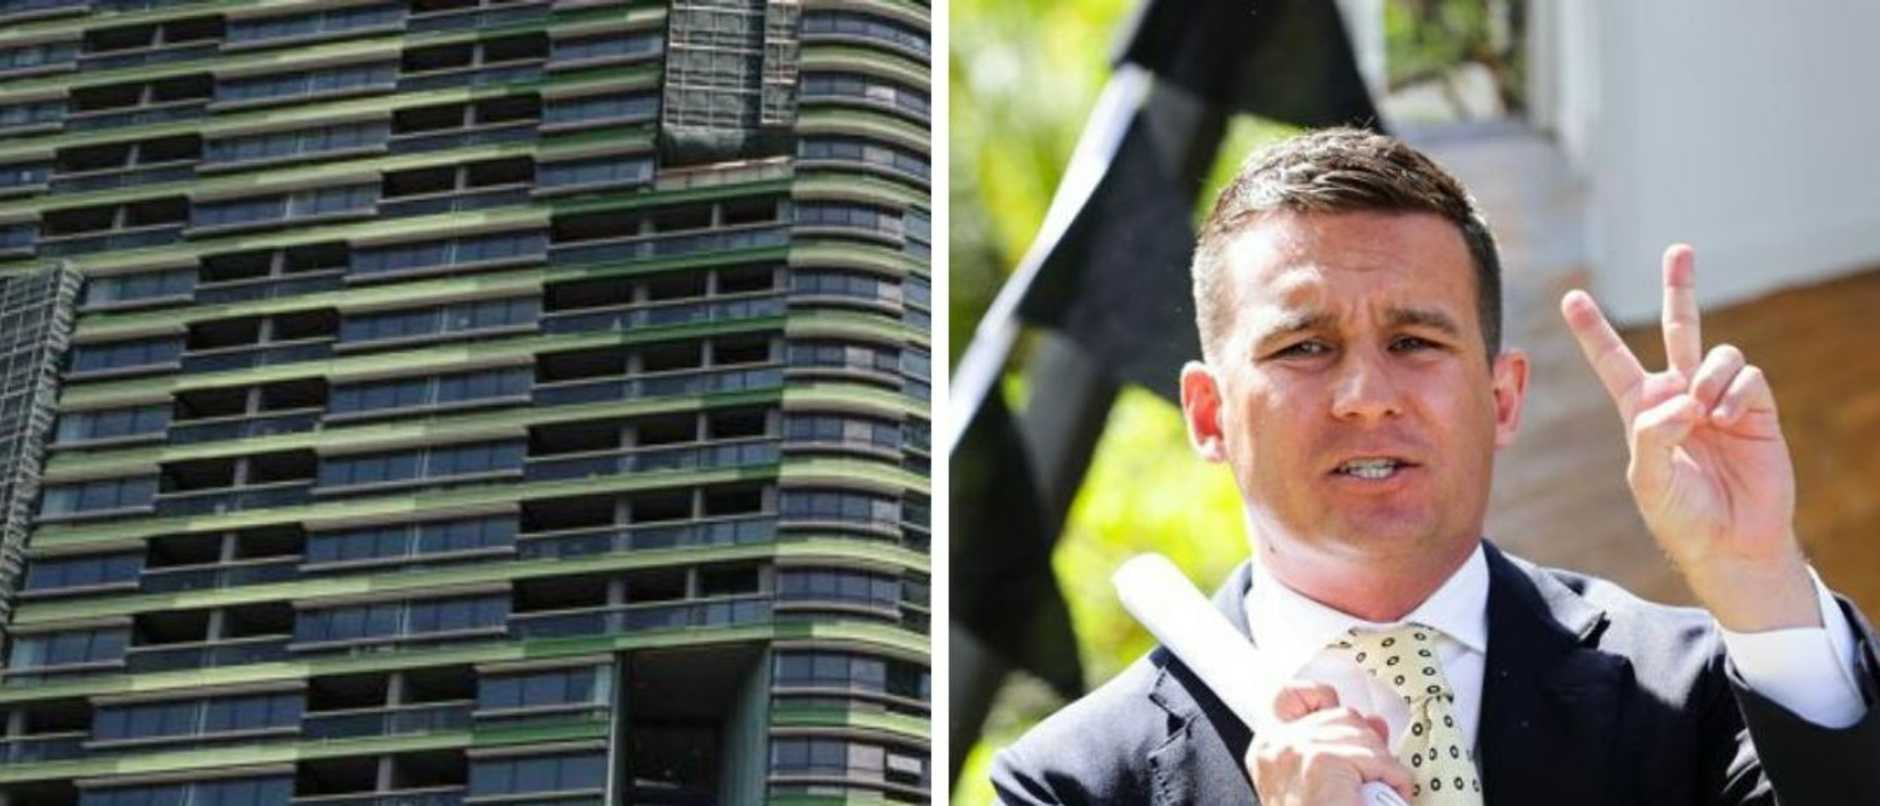 Landlords in one high-rise suburb have been forced to offer free rent and price discounting to combat a 300 per cent rise in vacant rental listings.